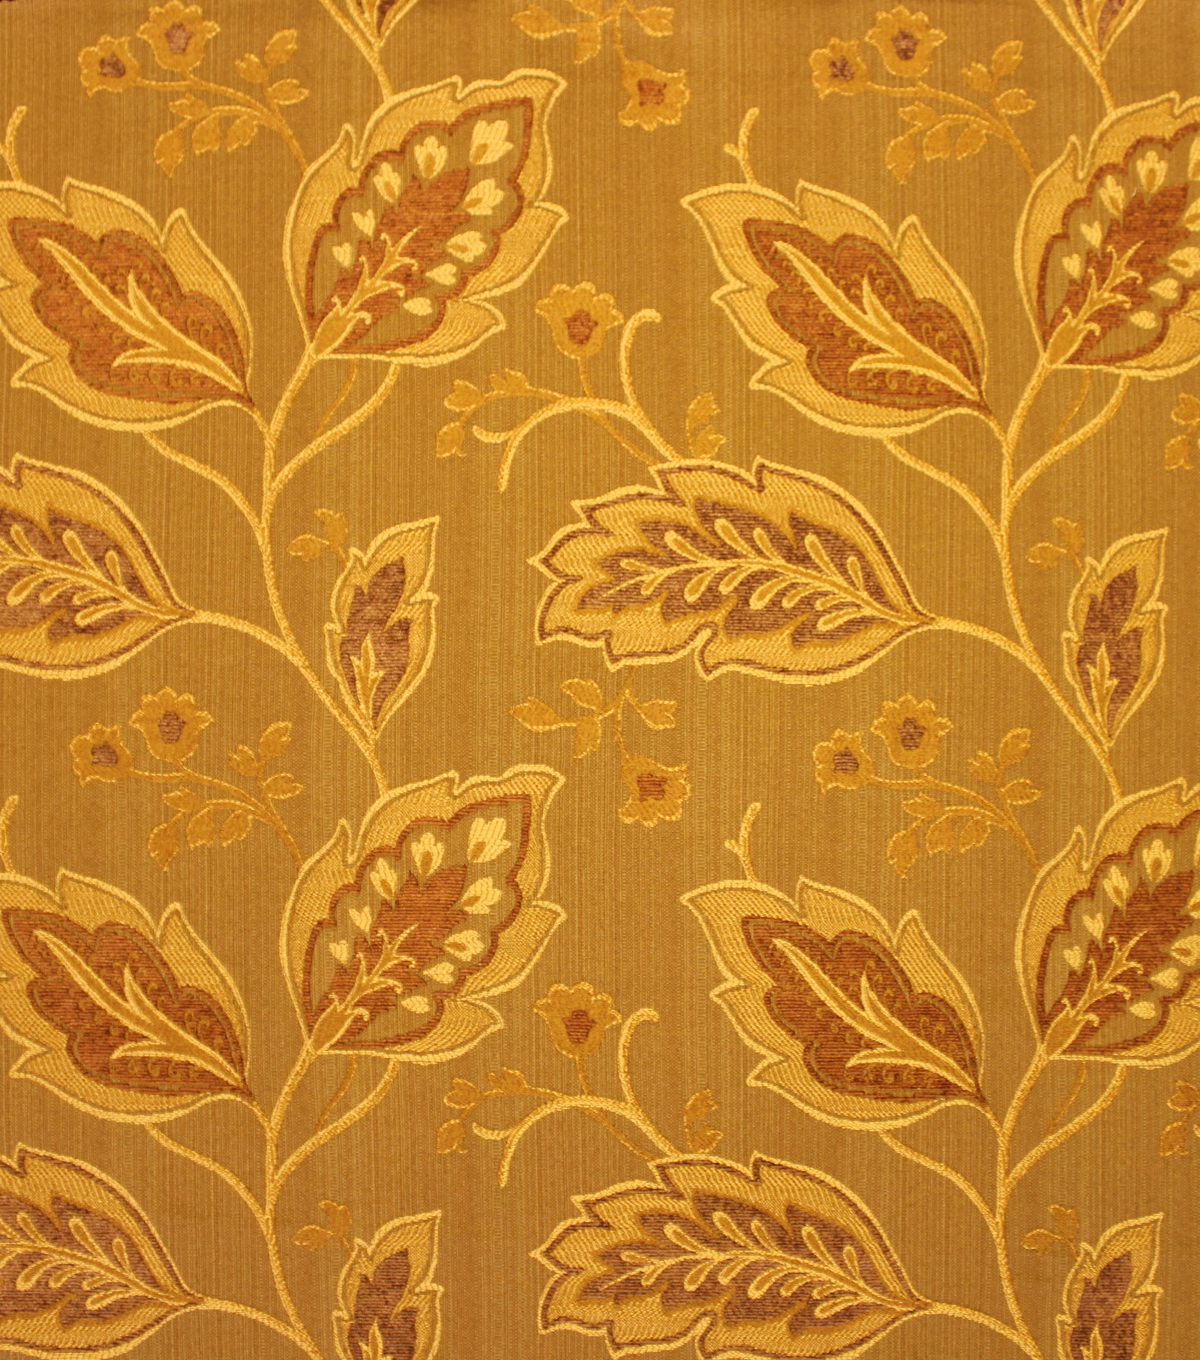 Upholstery Fabric-Barrow M7480 5341 Thistle